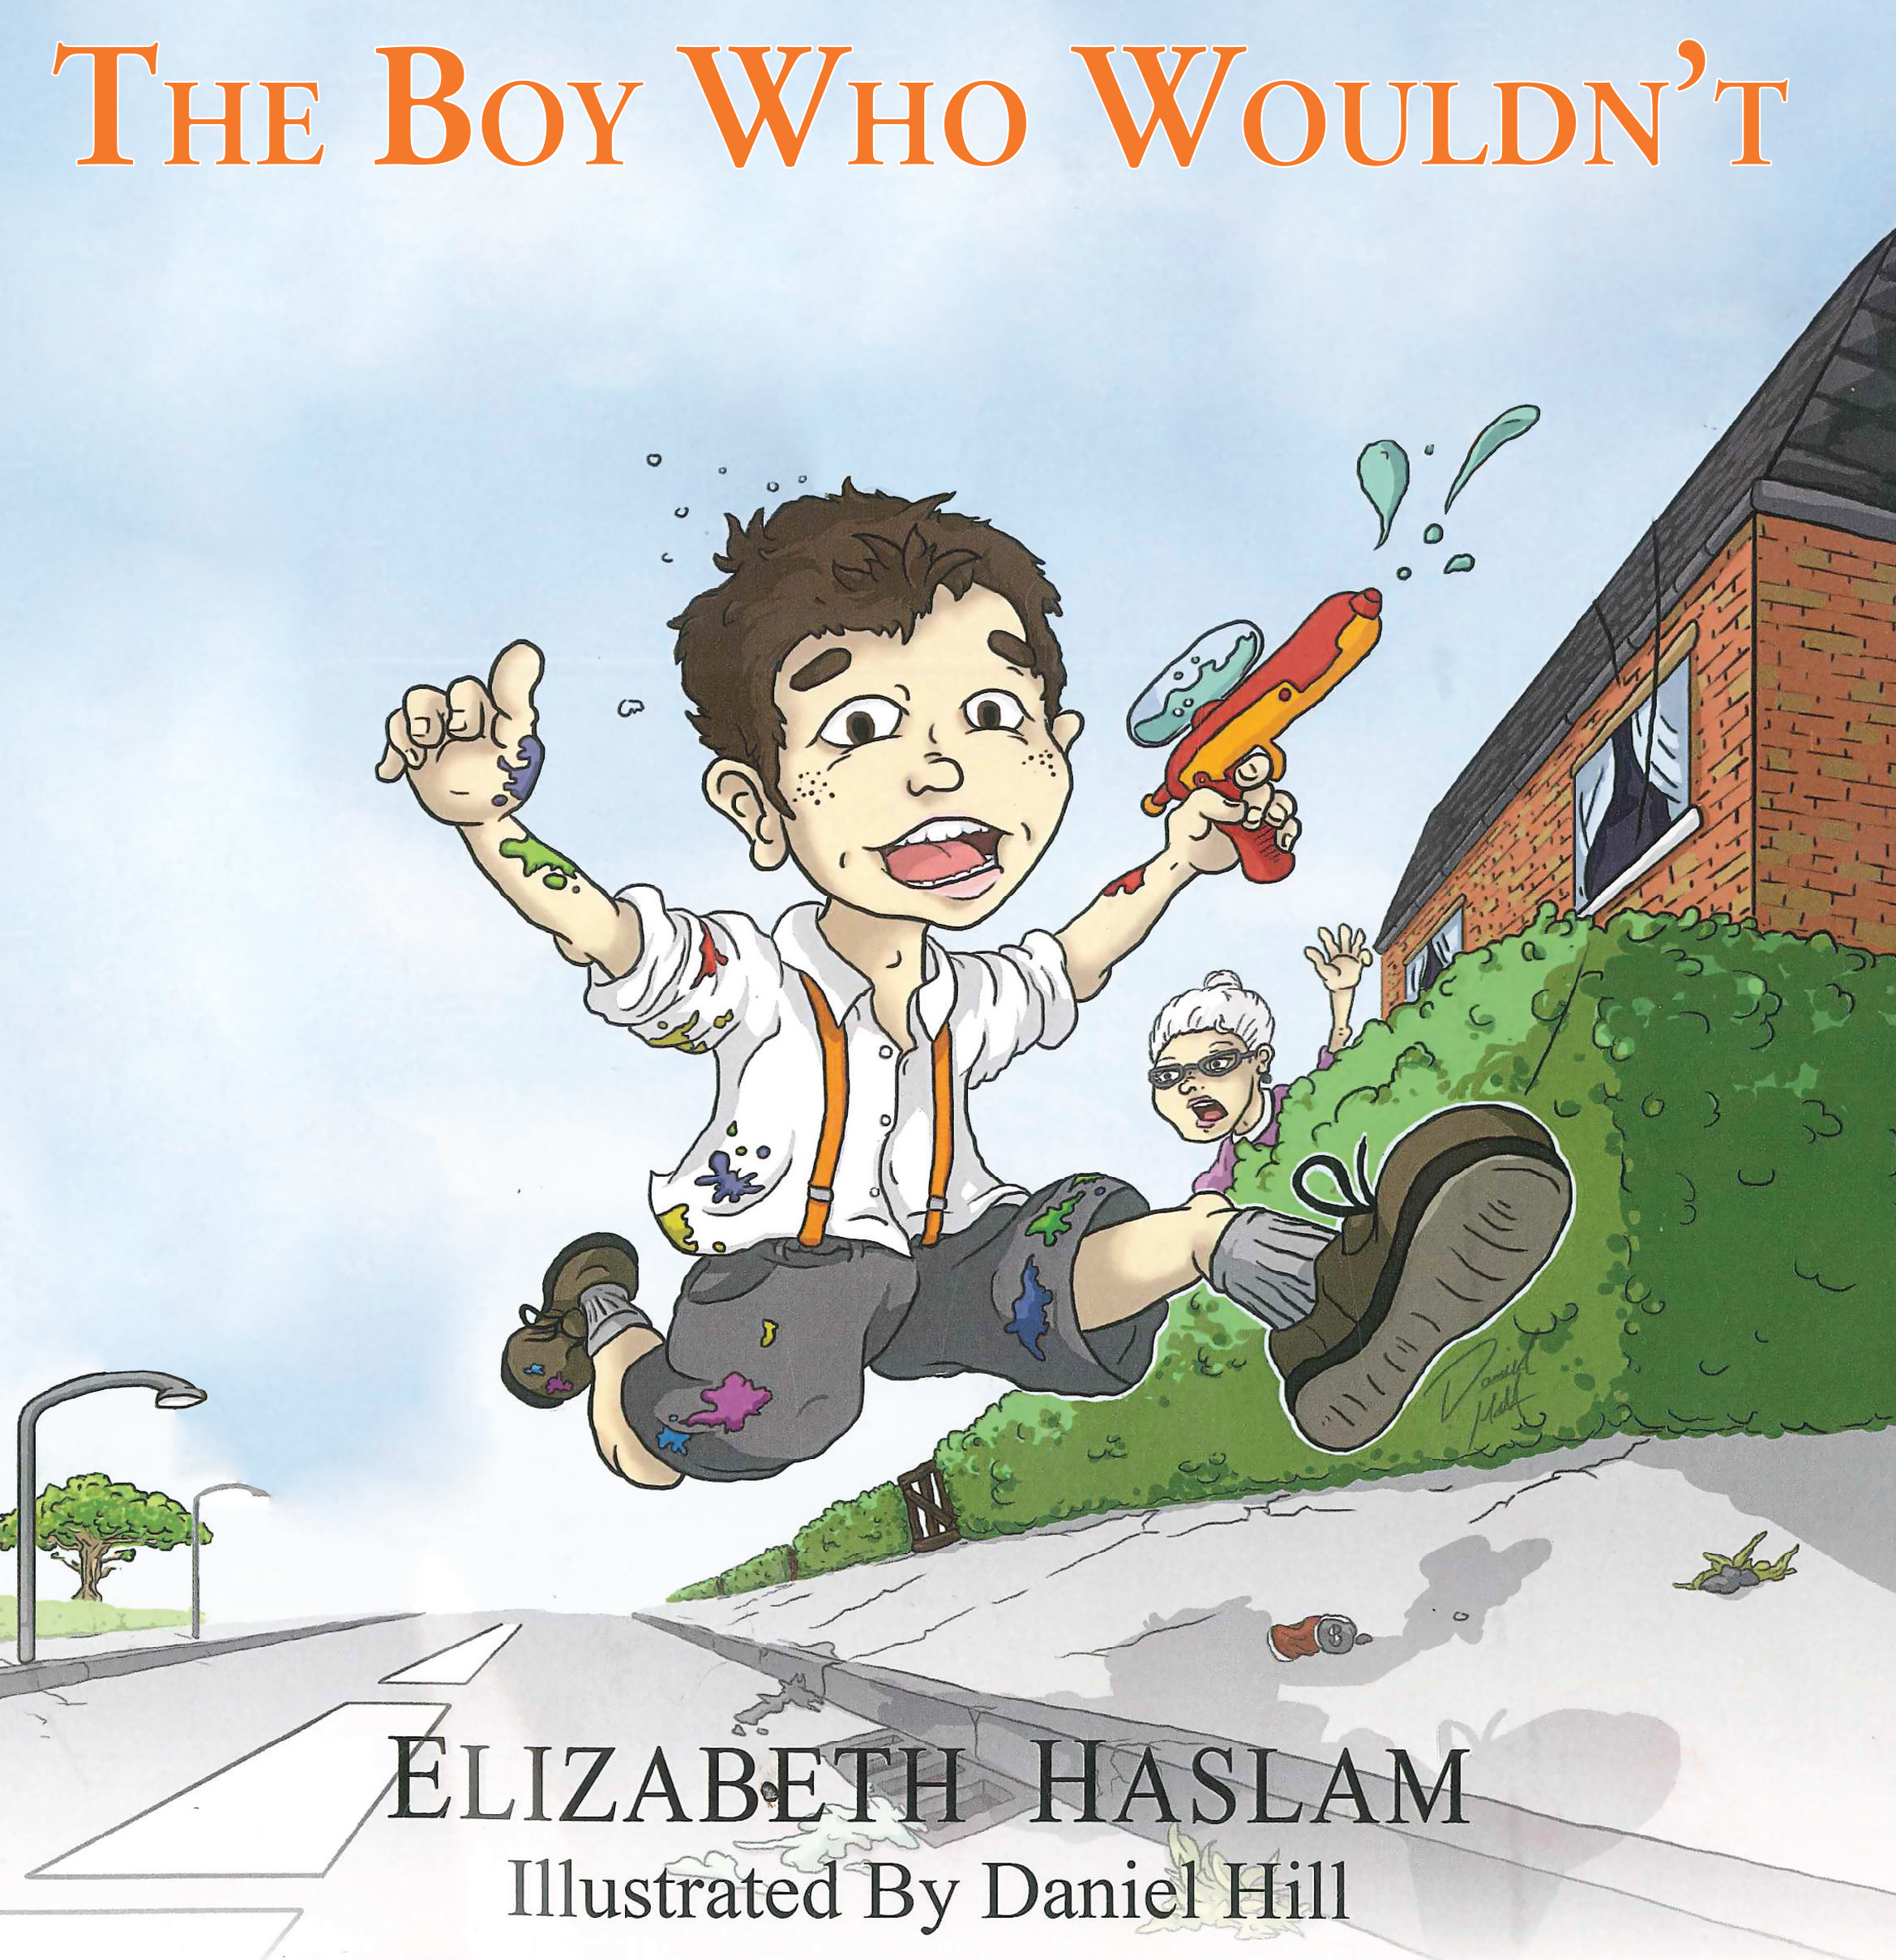 The Boy who wouldn't